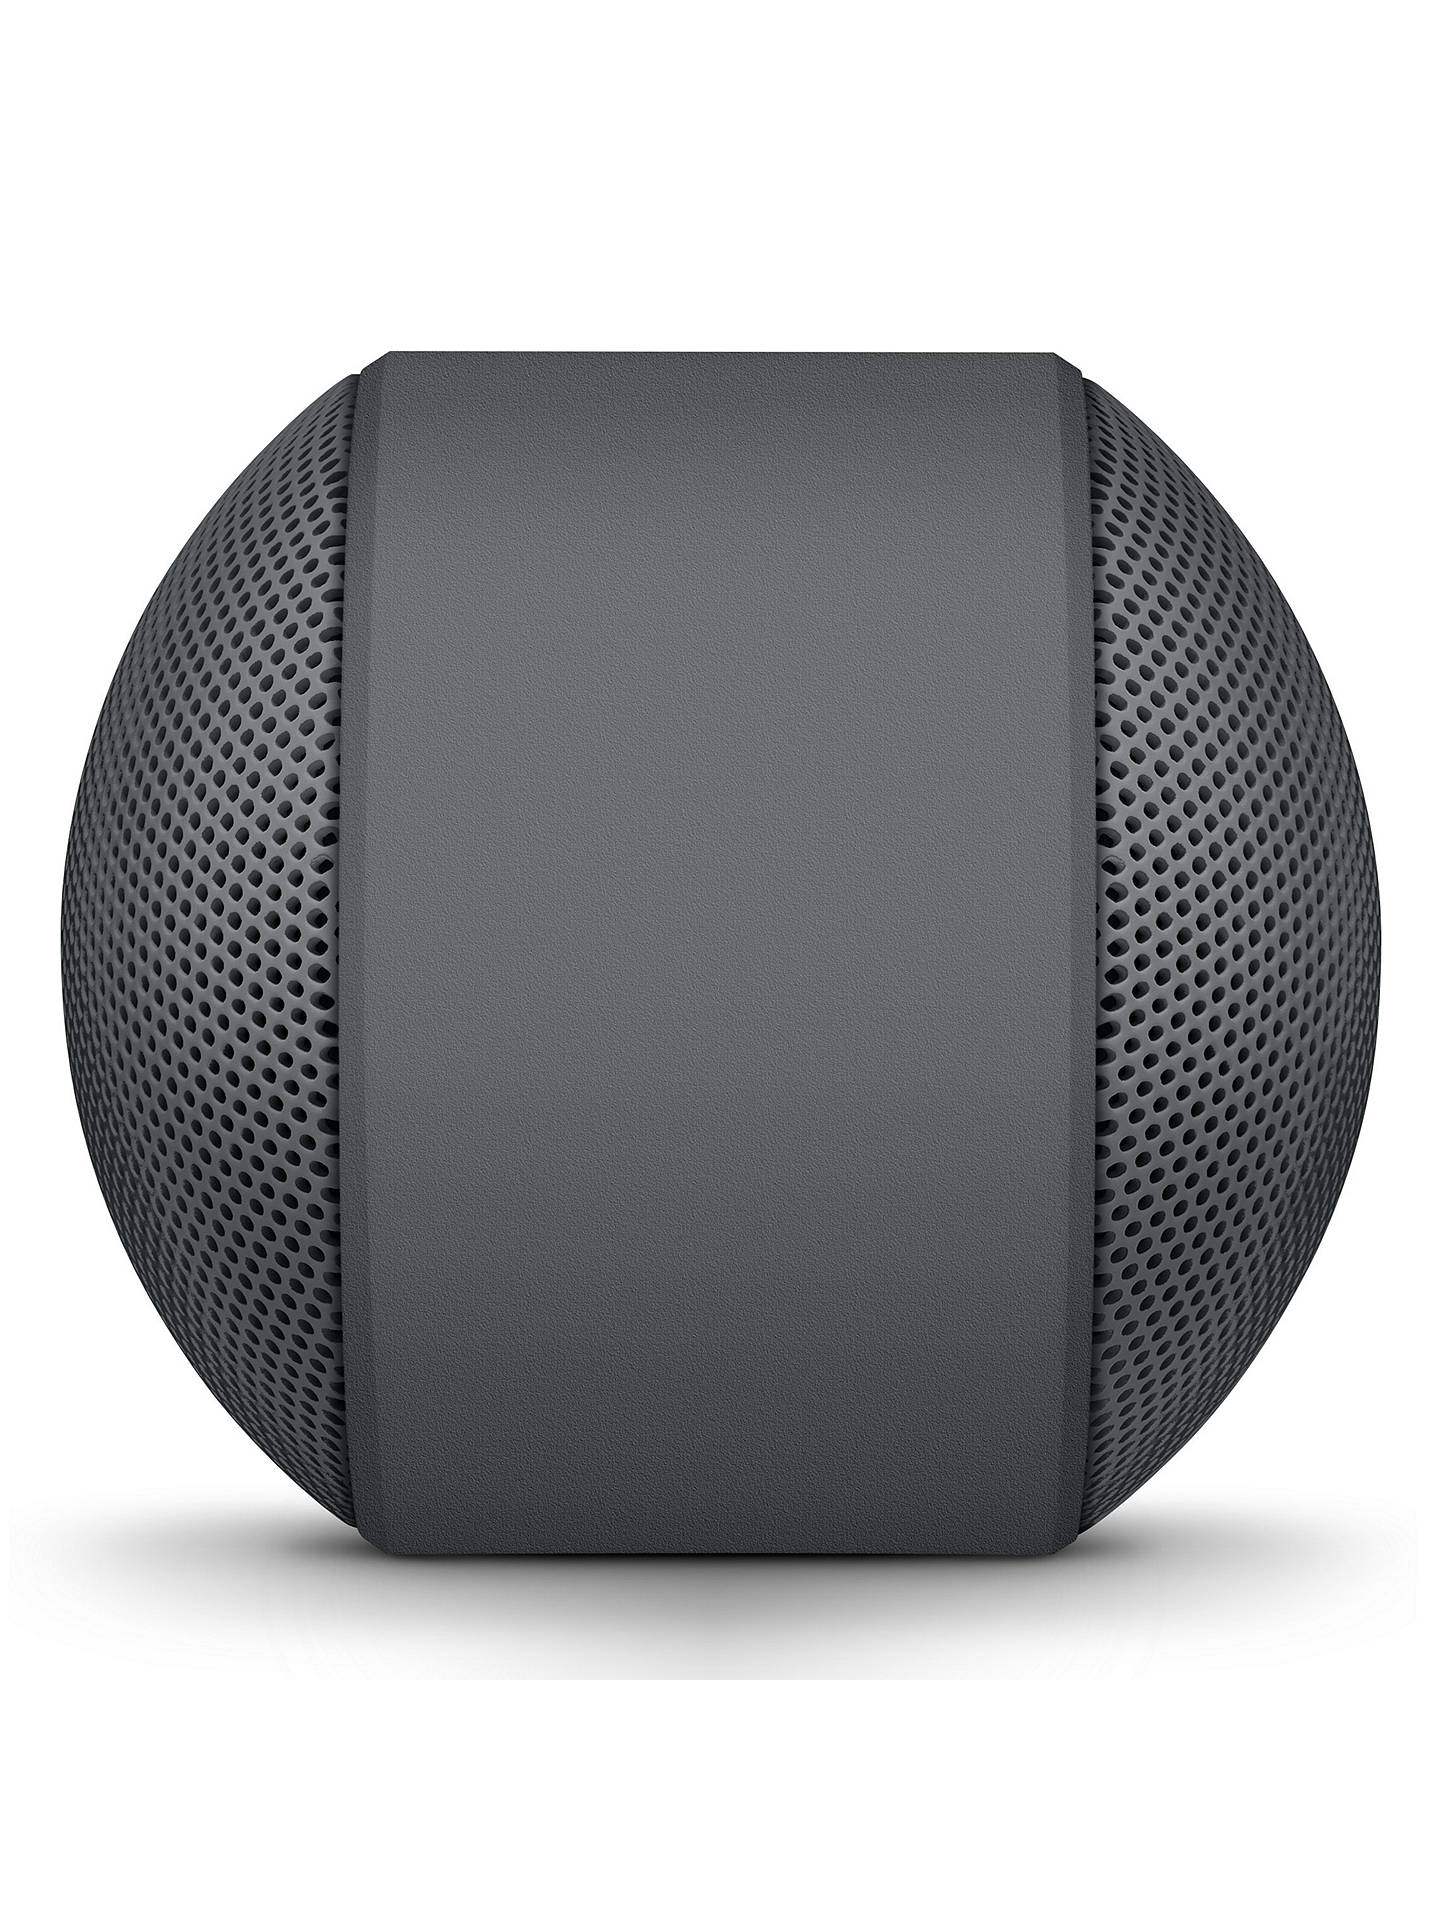 Buy Beats Pill+ Portable Bluetooth Speaker With Microphone, Neighbourhood Collection, Asphalt Grey Online at johnlewis.com